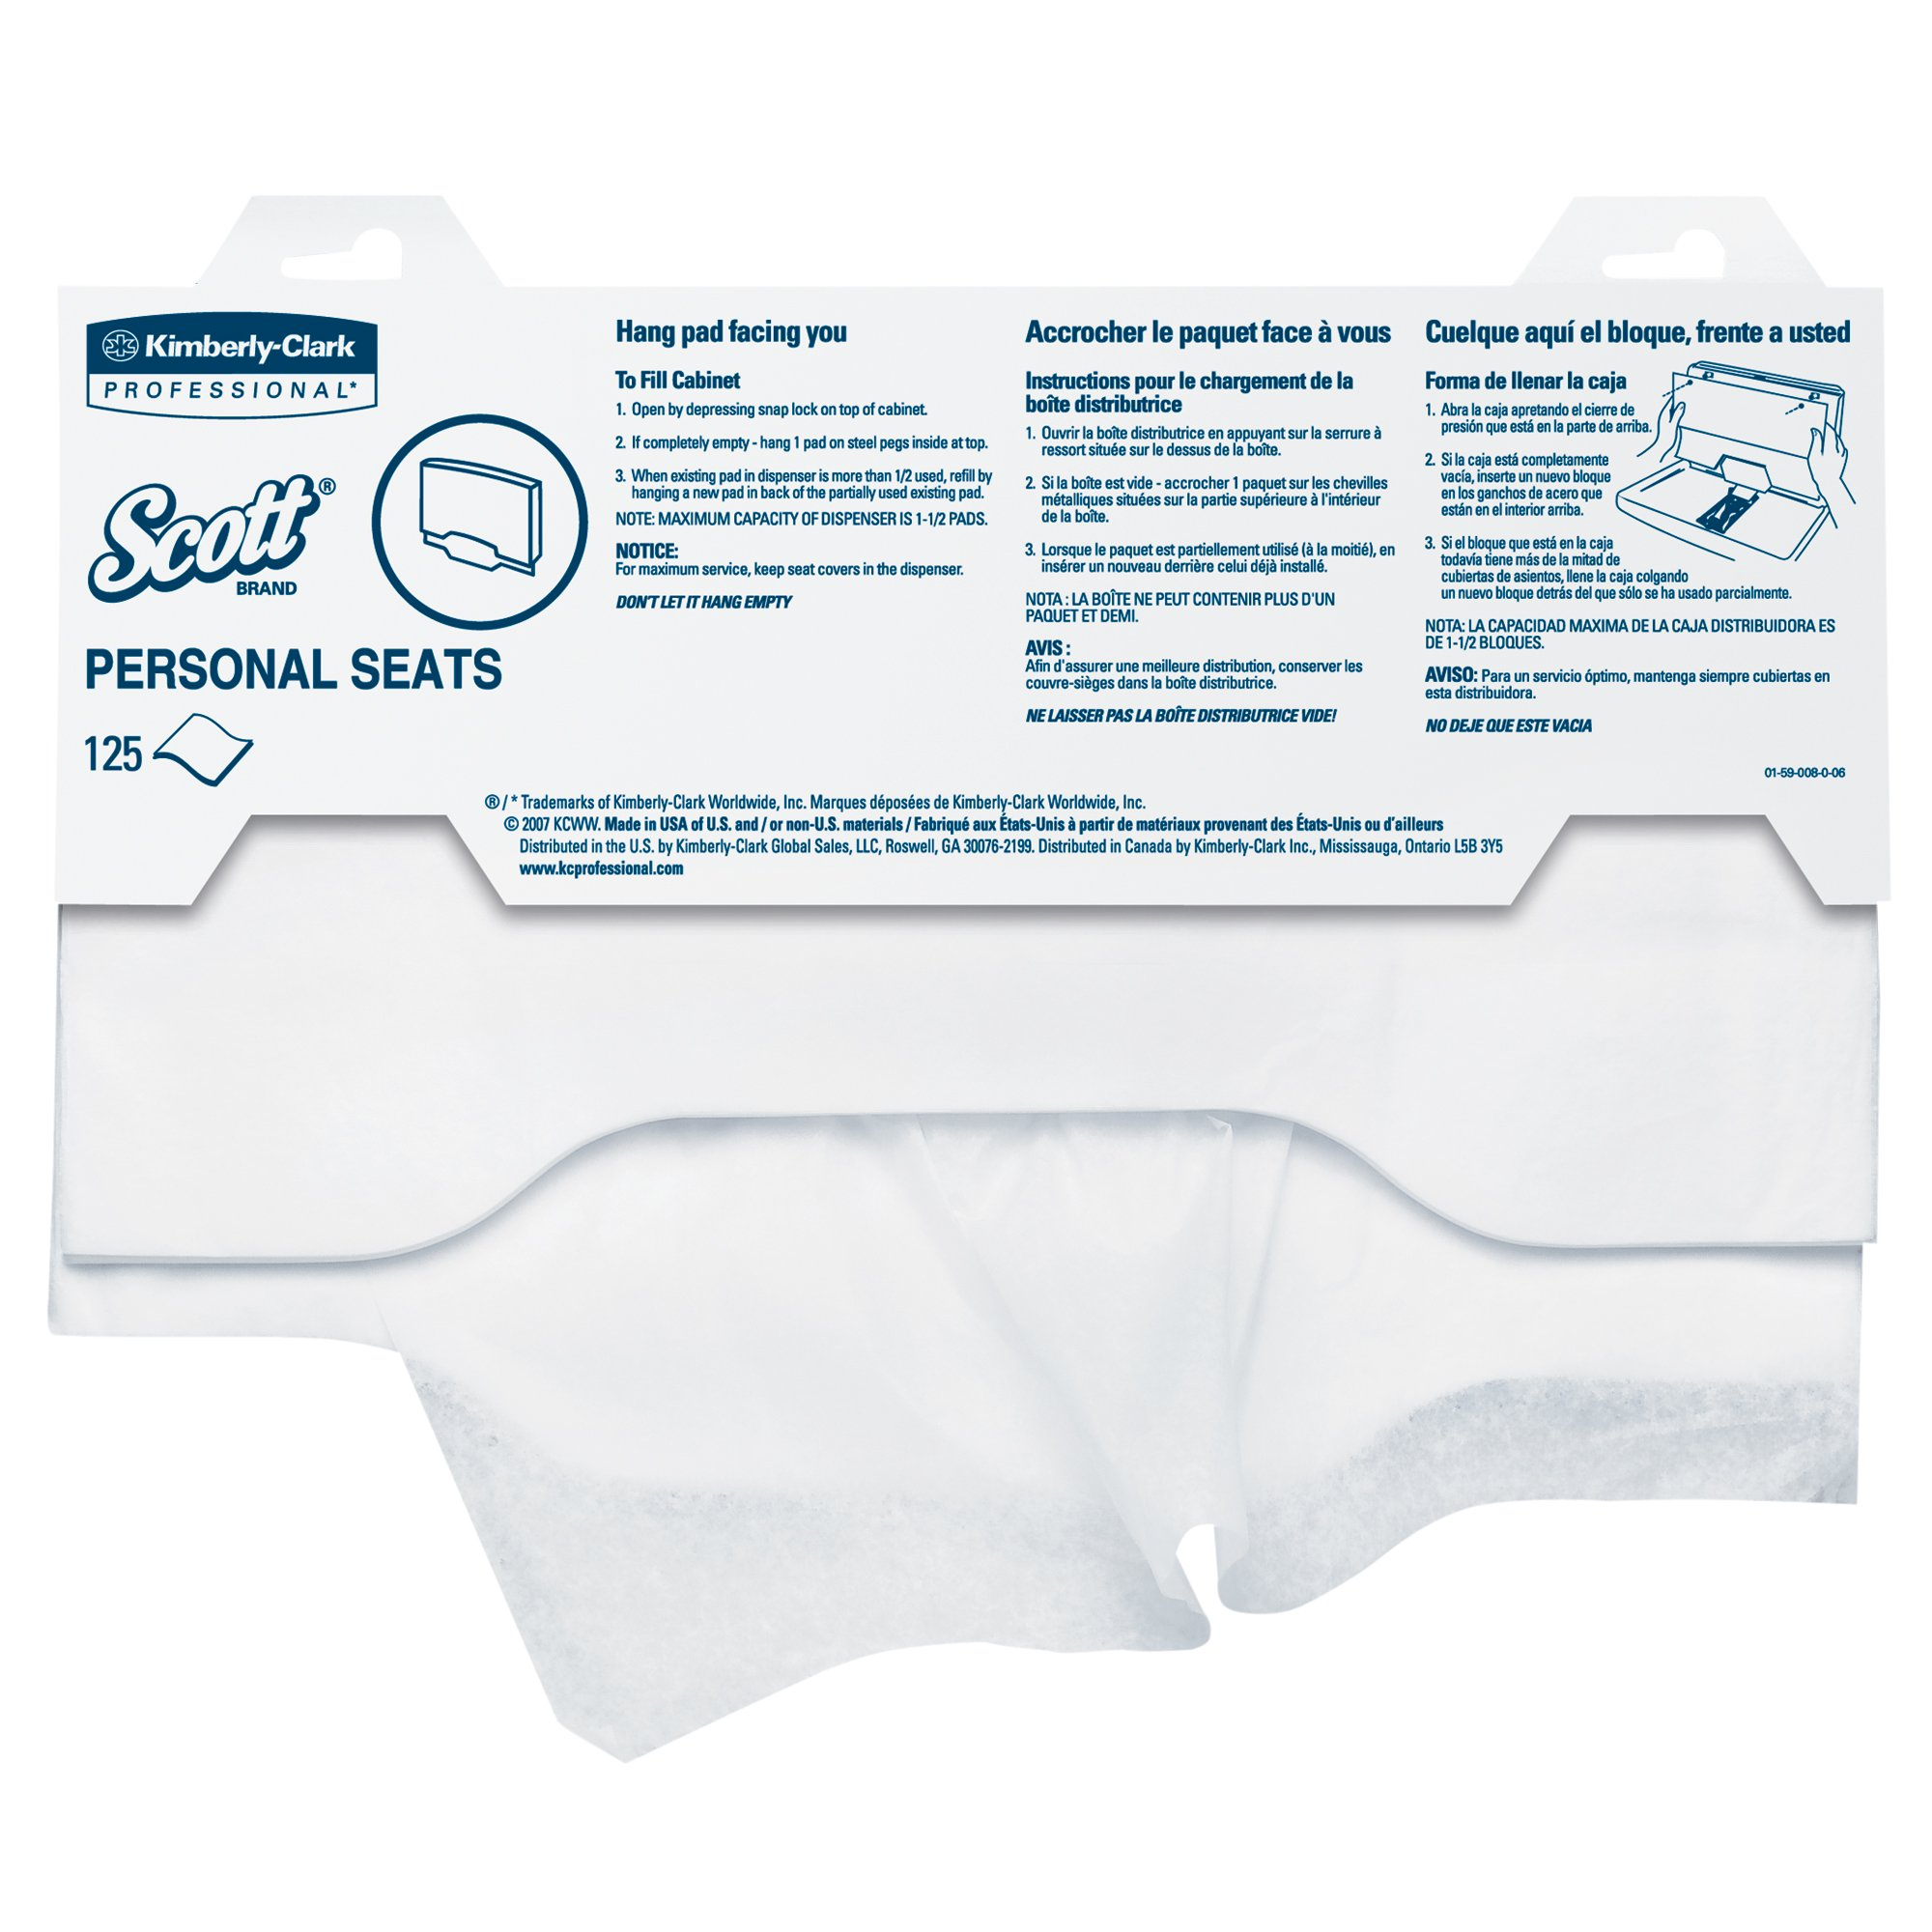 Scott Pro Toilet Seat Cover (07410), White, Disposable, 125 Covers / Pack, 24 Packs / Case by Kimberly-Clark Professional